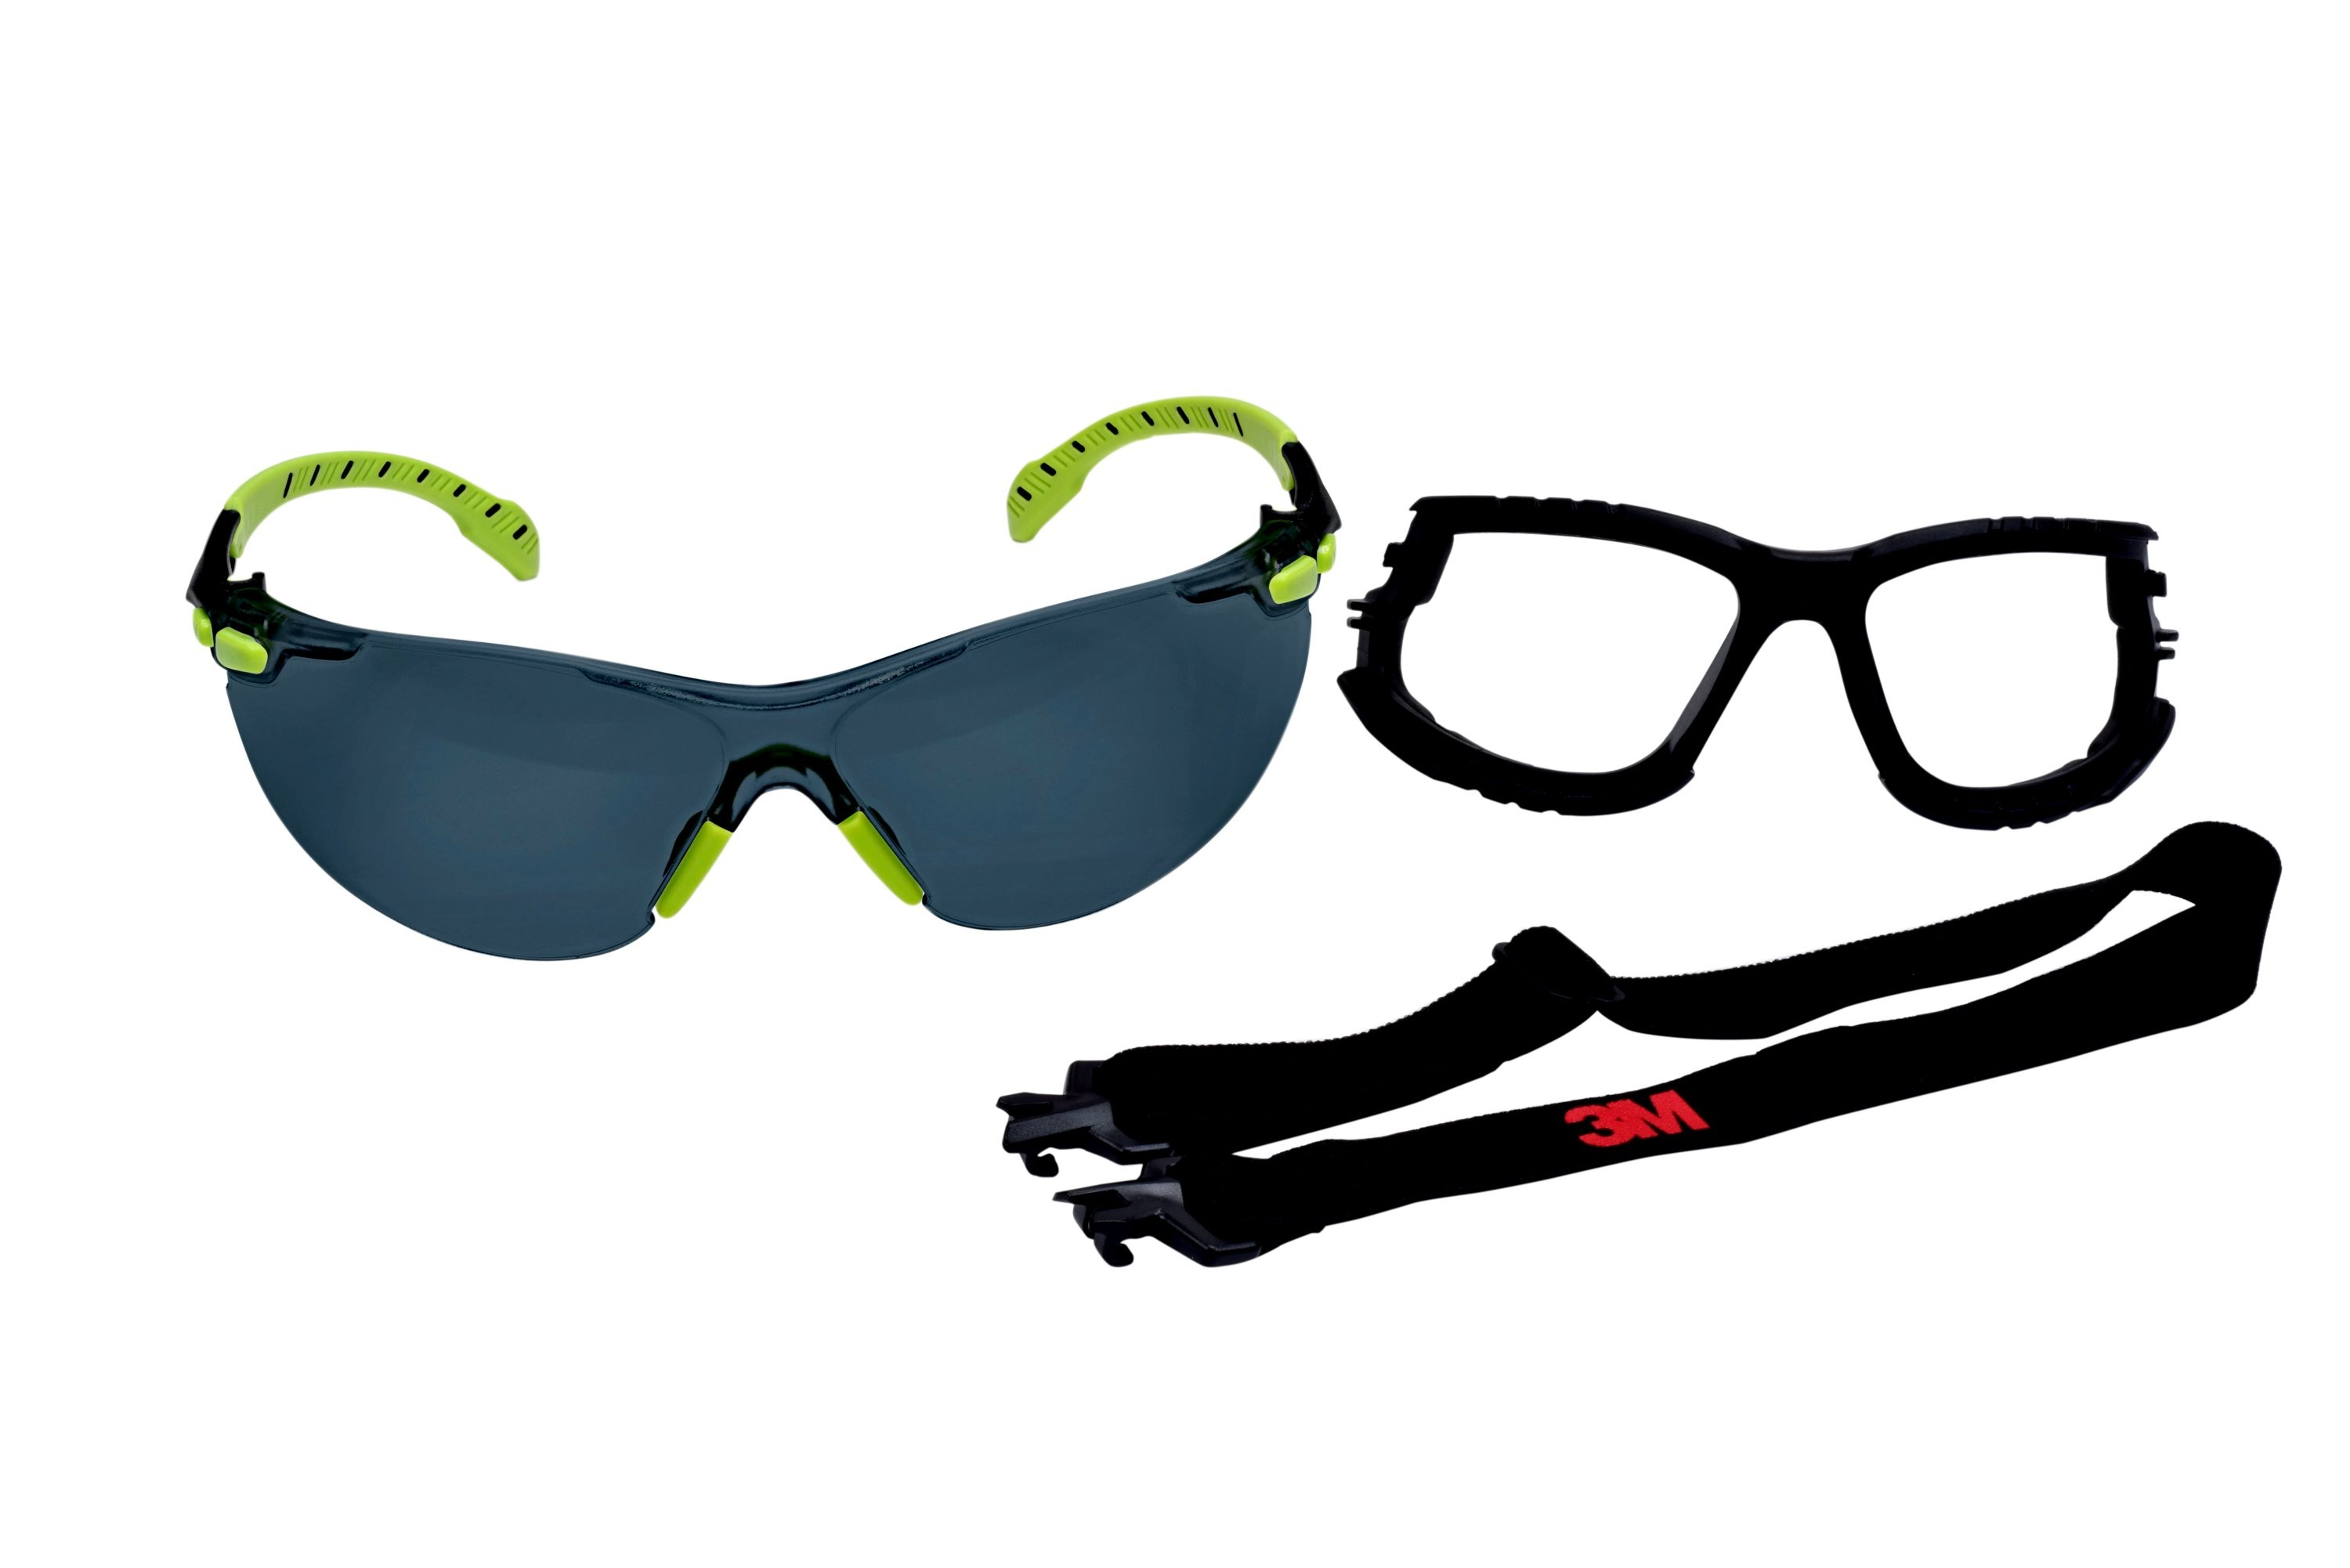 3M™ Solus, 1000-Series, S1202SGAF-KT, Foam, Strap, Green Black, Grey  Scotchgard™ Anti-fog lens, 20ea cs 74d0ae97c691